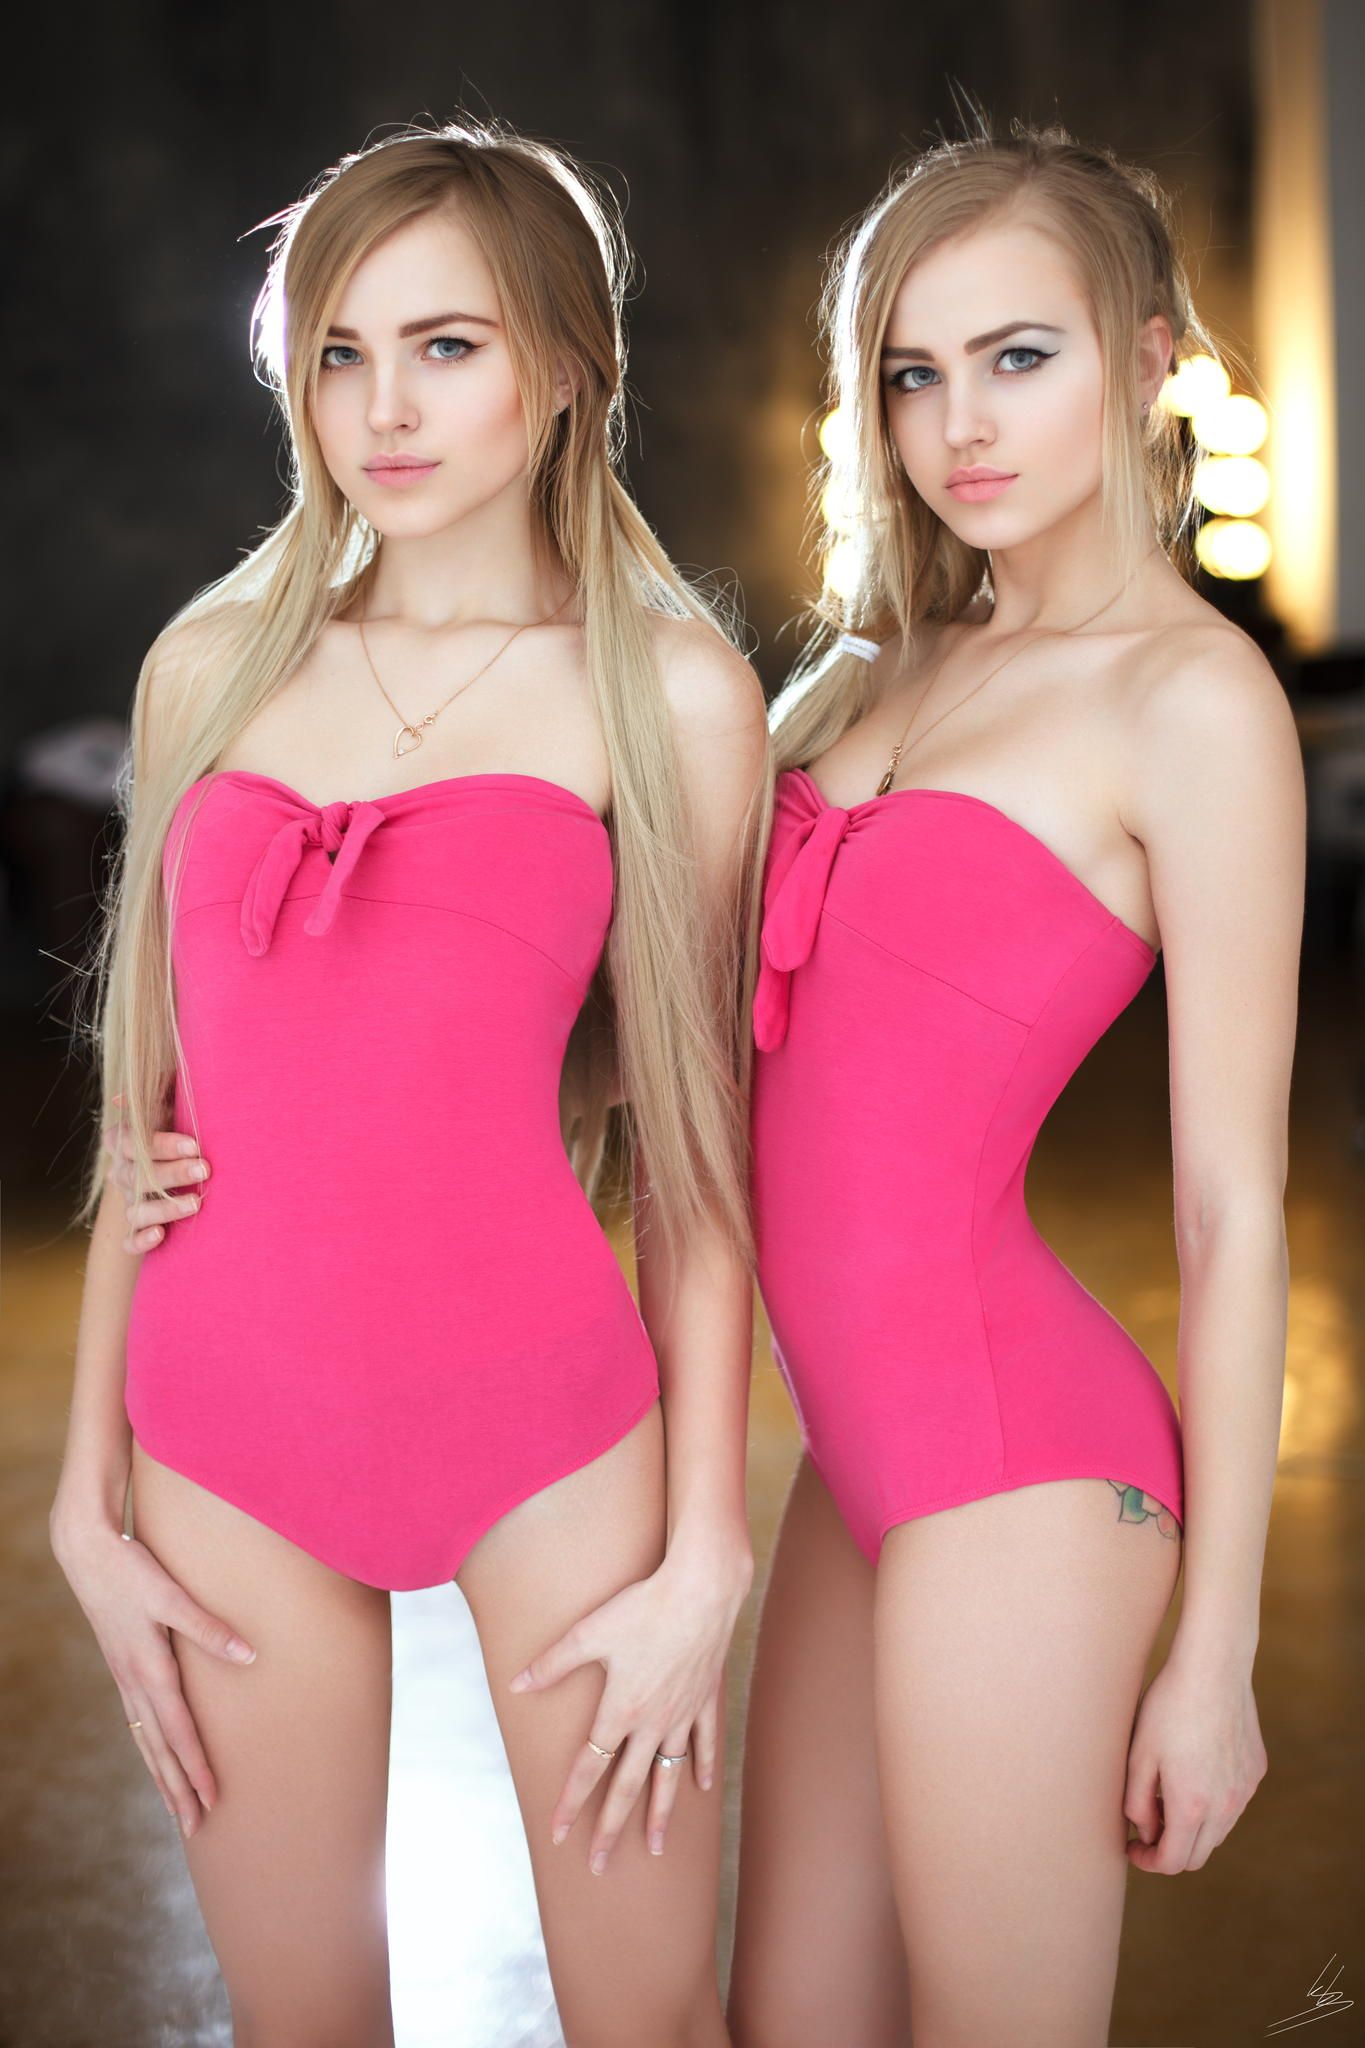 slave-story-young-nude-twin-girls-and